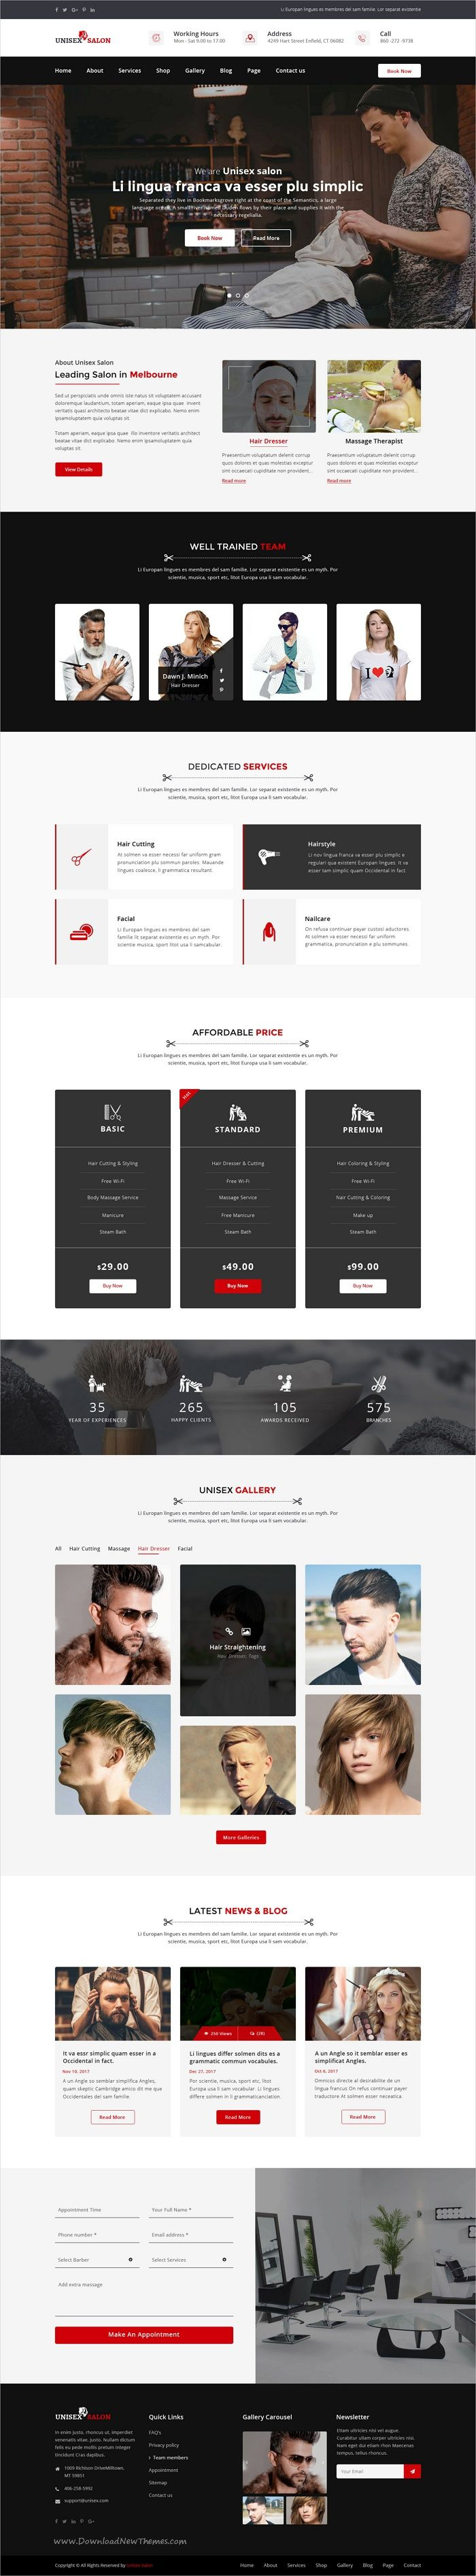 Unisex is clean and modern design #Photoshop template for #barbershop, #hair spa and #beauty salons website with 3 homepage layouts and 27 layered PSD files download now➩ https://themeforest.net/item/unisex-salon-barber-shop-hair-spa-and-beauty-salon-psd-template/19797130?ref=Datasata